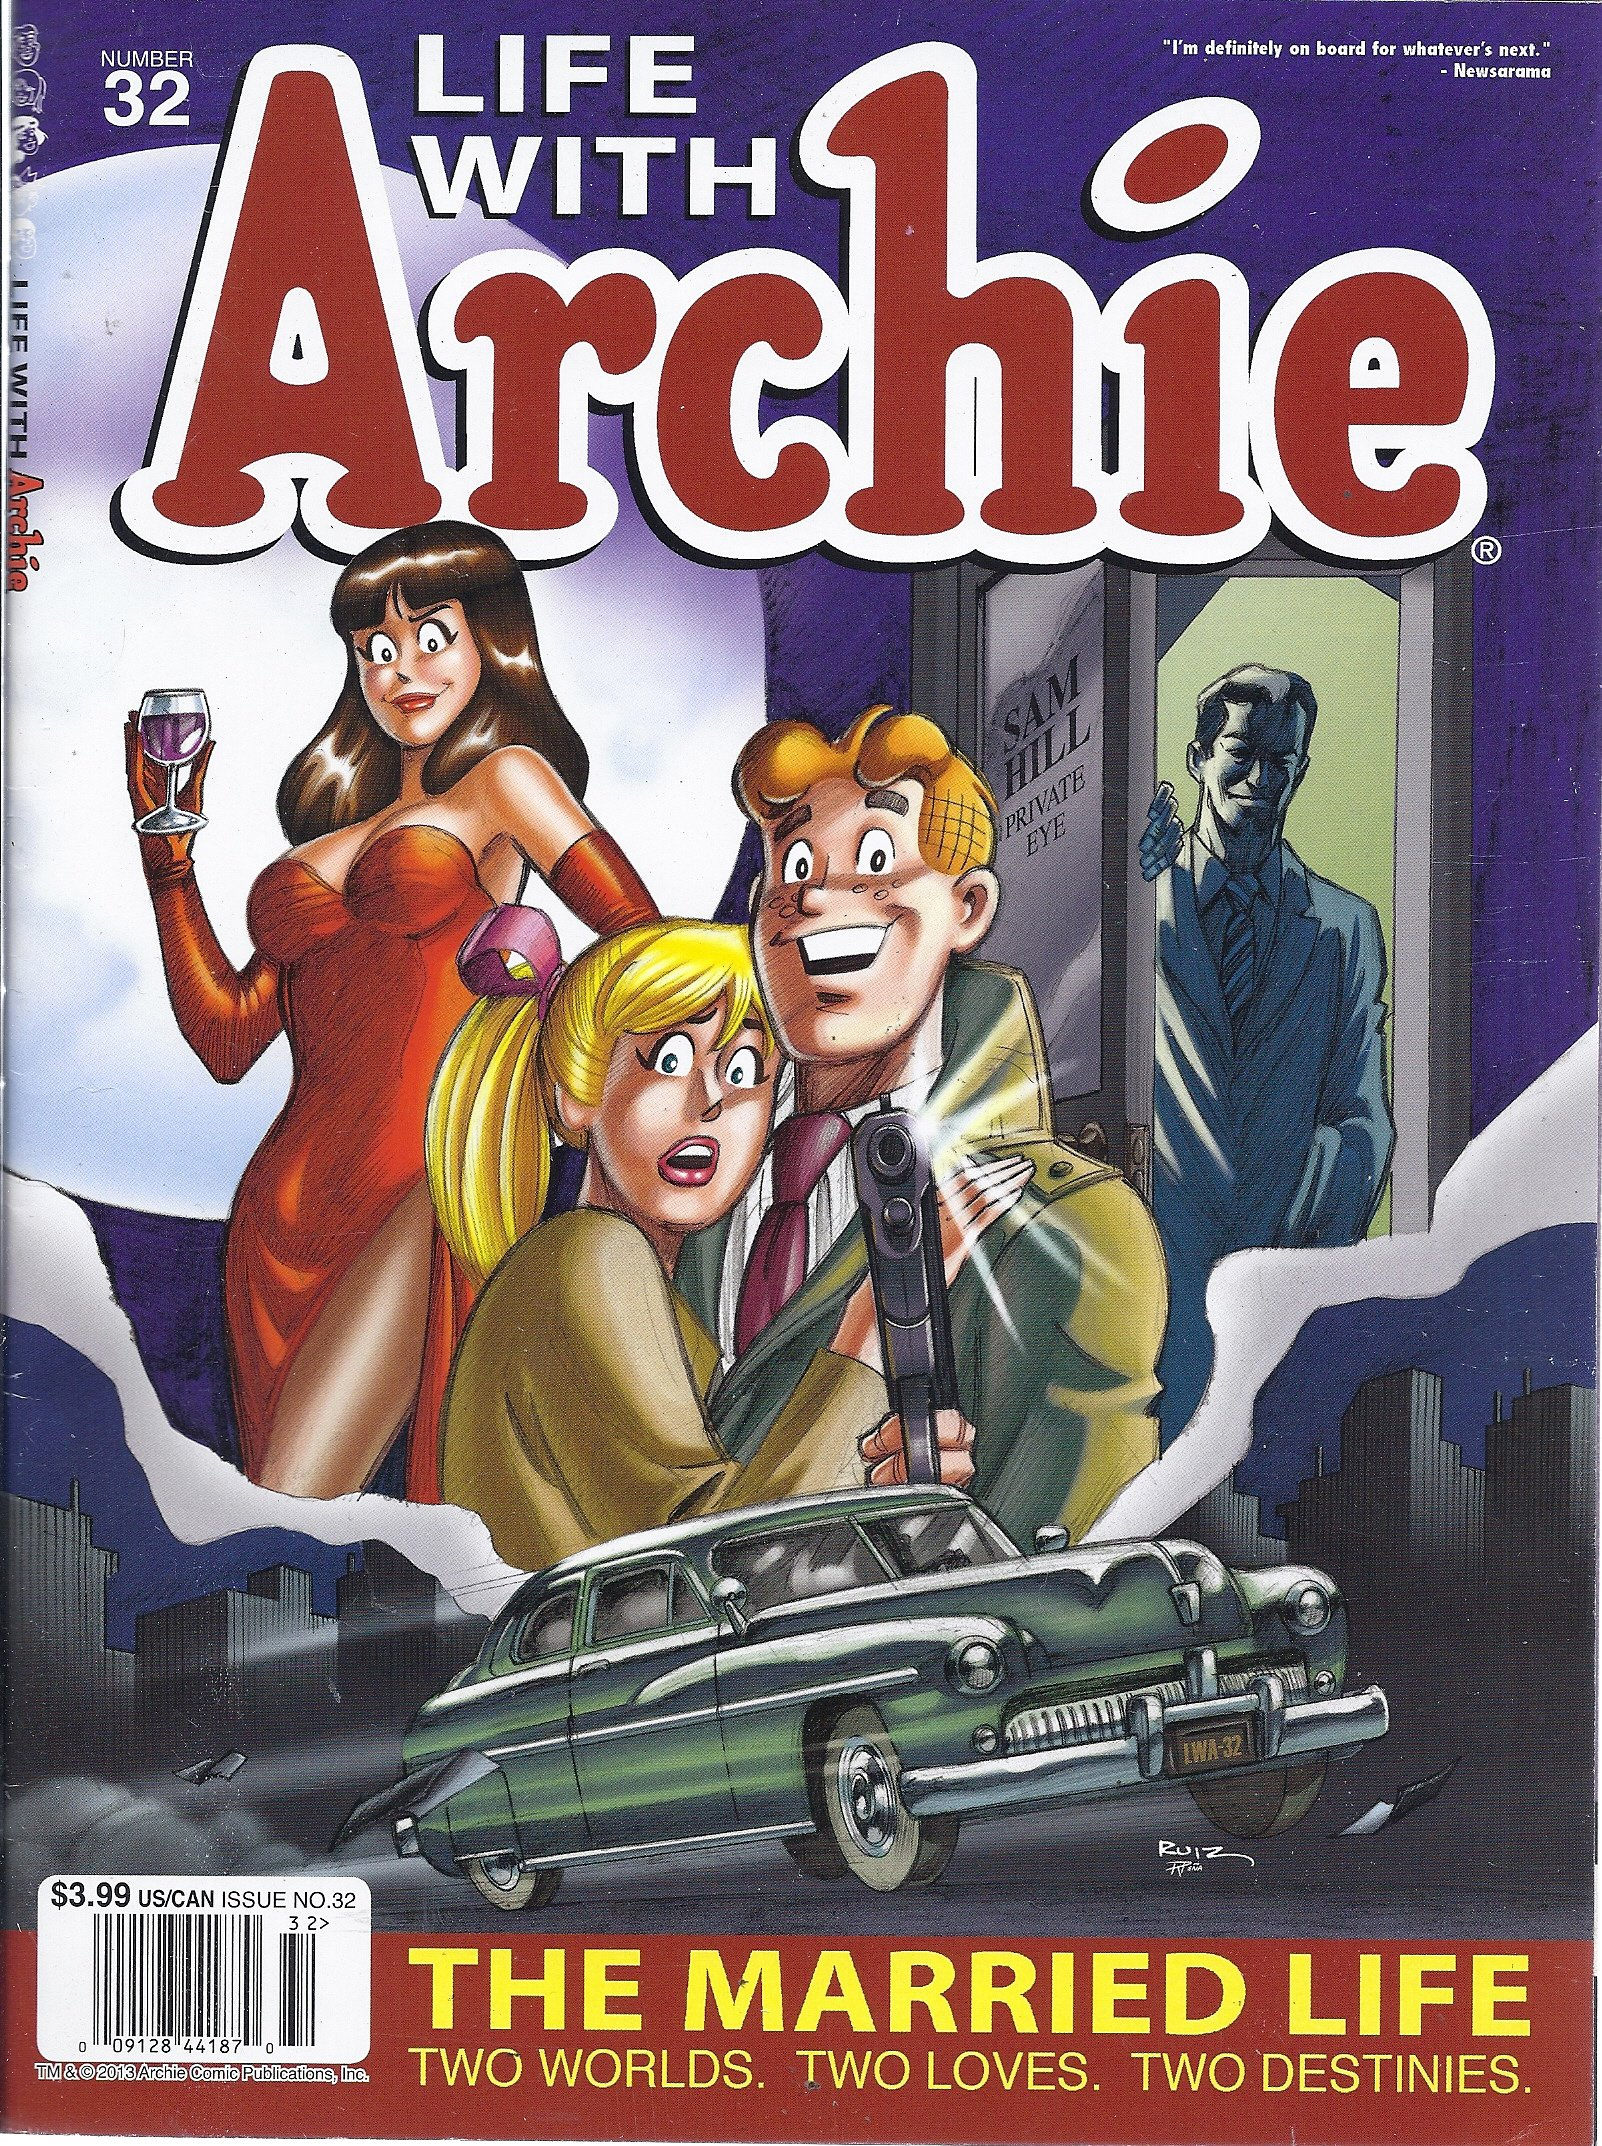 Download Life With Archie (November 2013 - #32) ebook